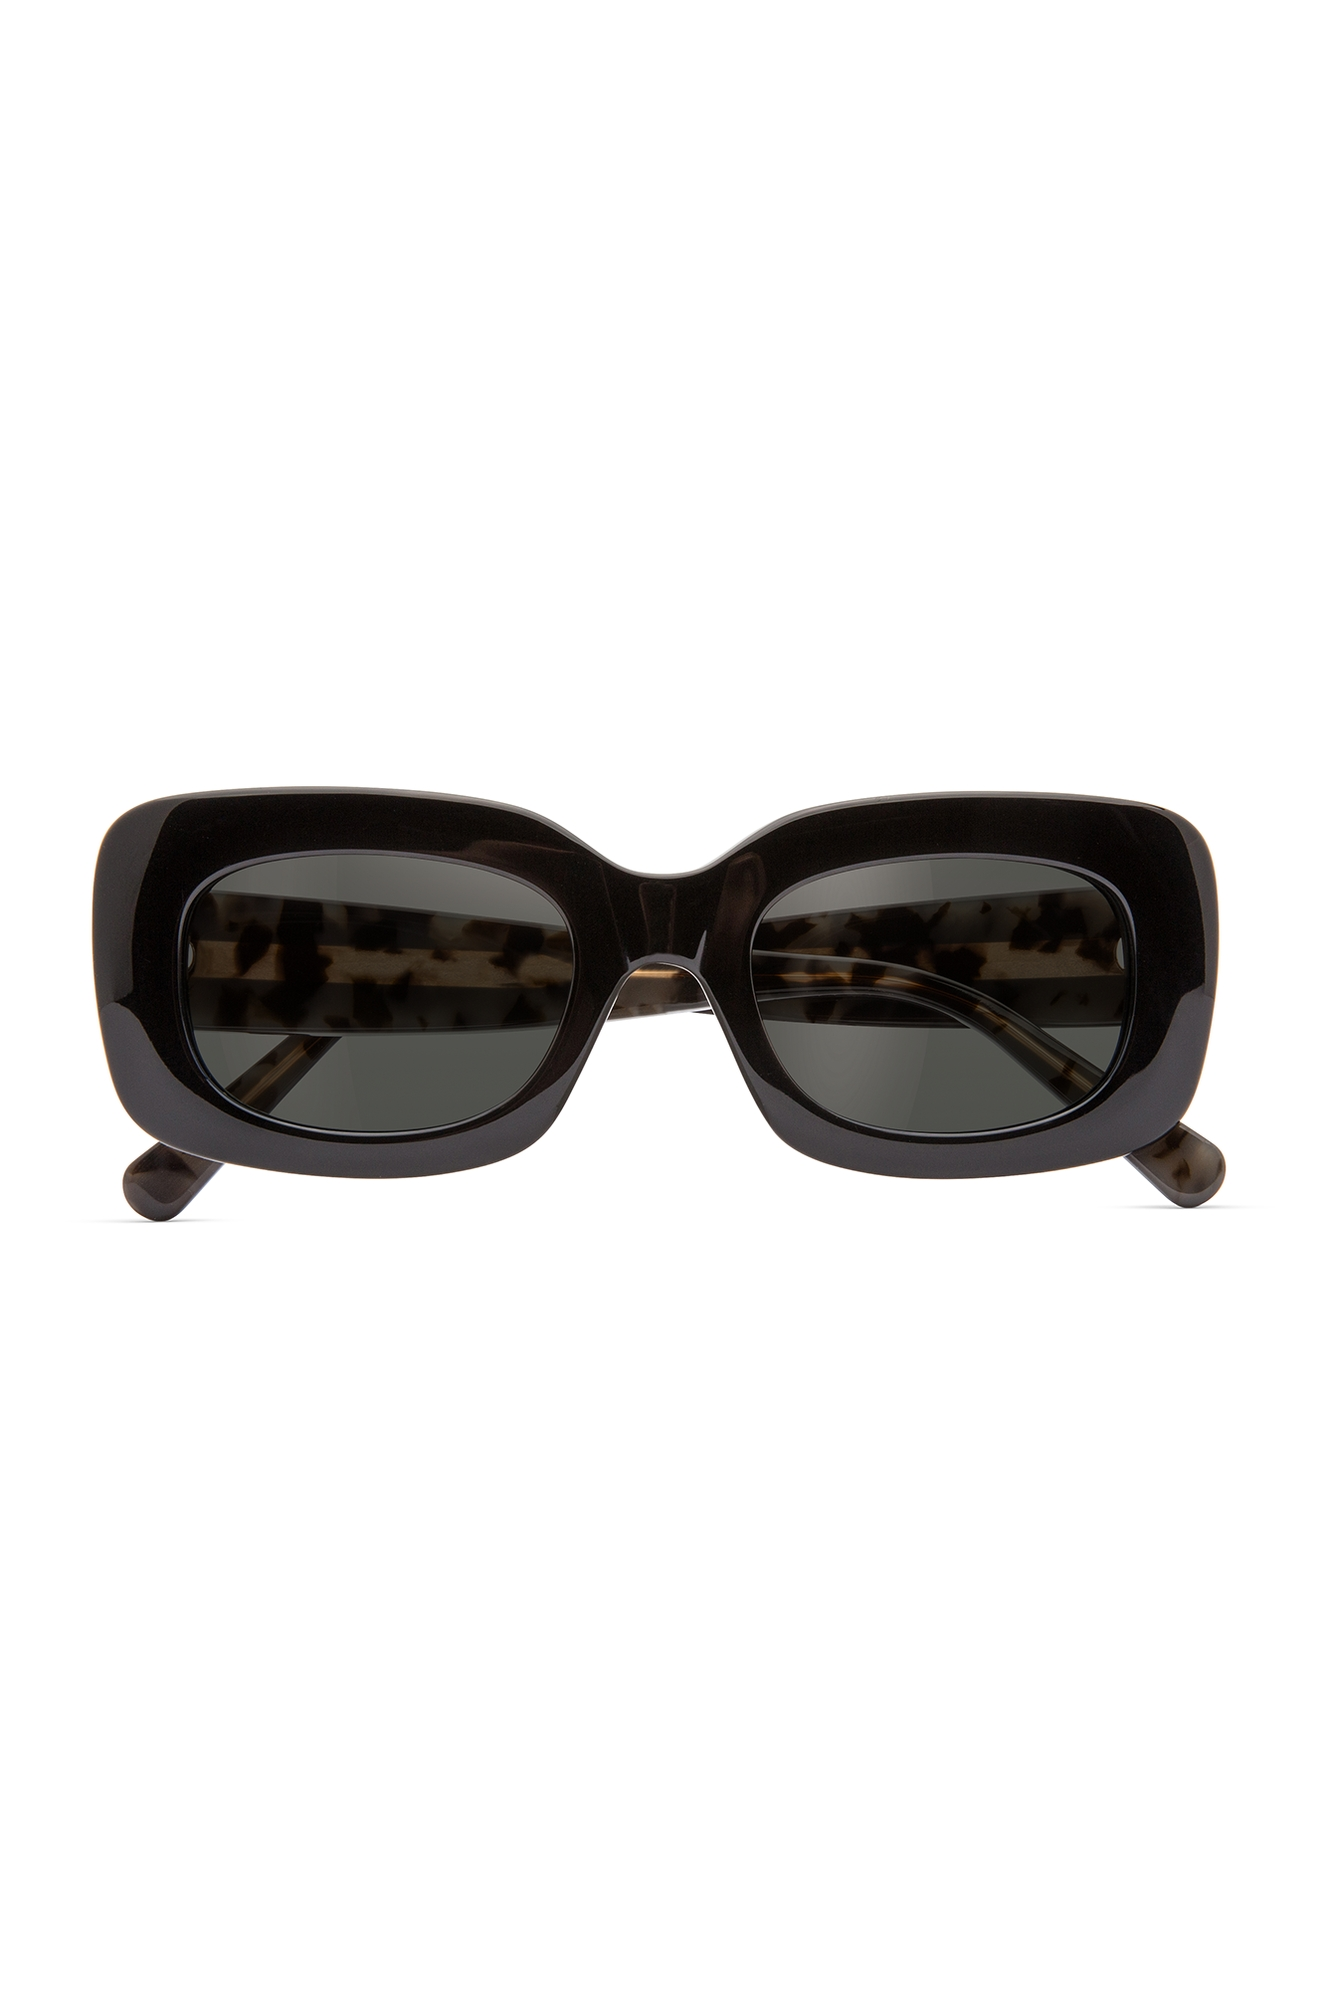 Amuse for D'Blanc Elsewhere Sunglasses